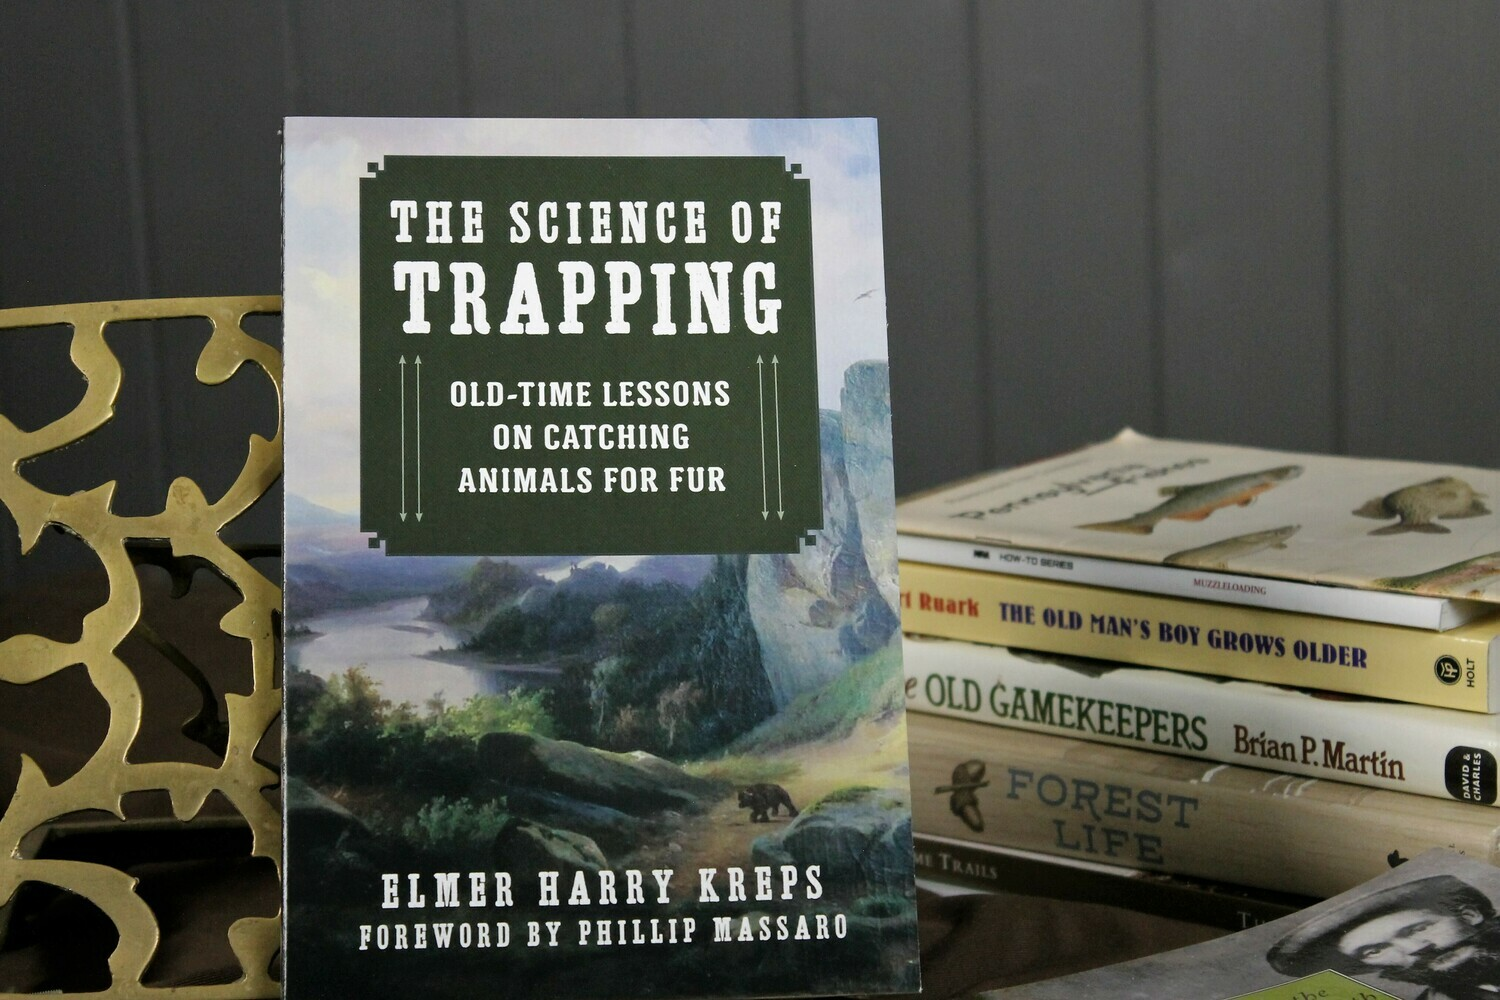 The Science of Trapping by E.H. Kreps